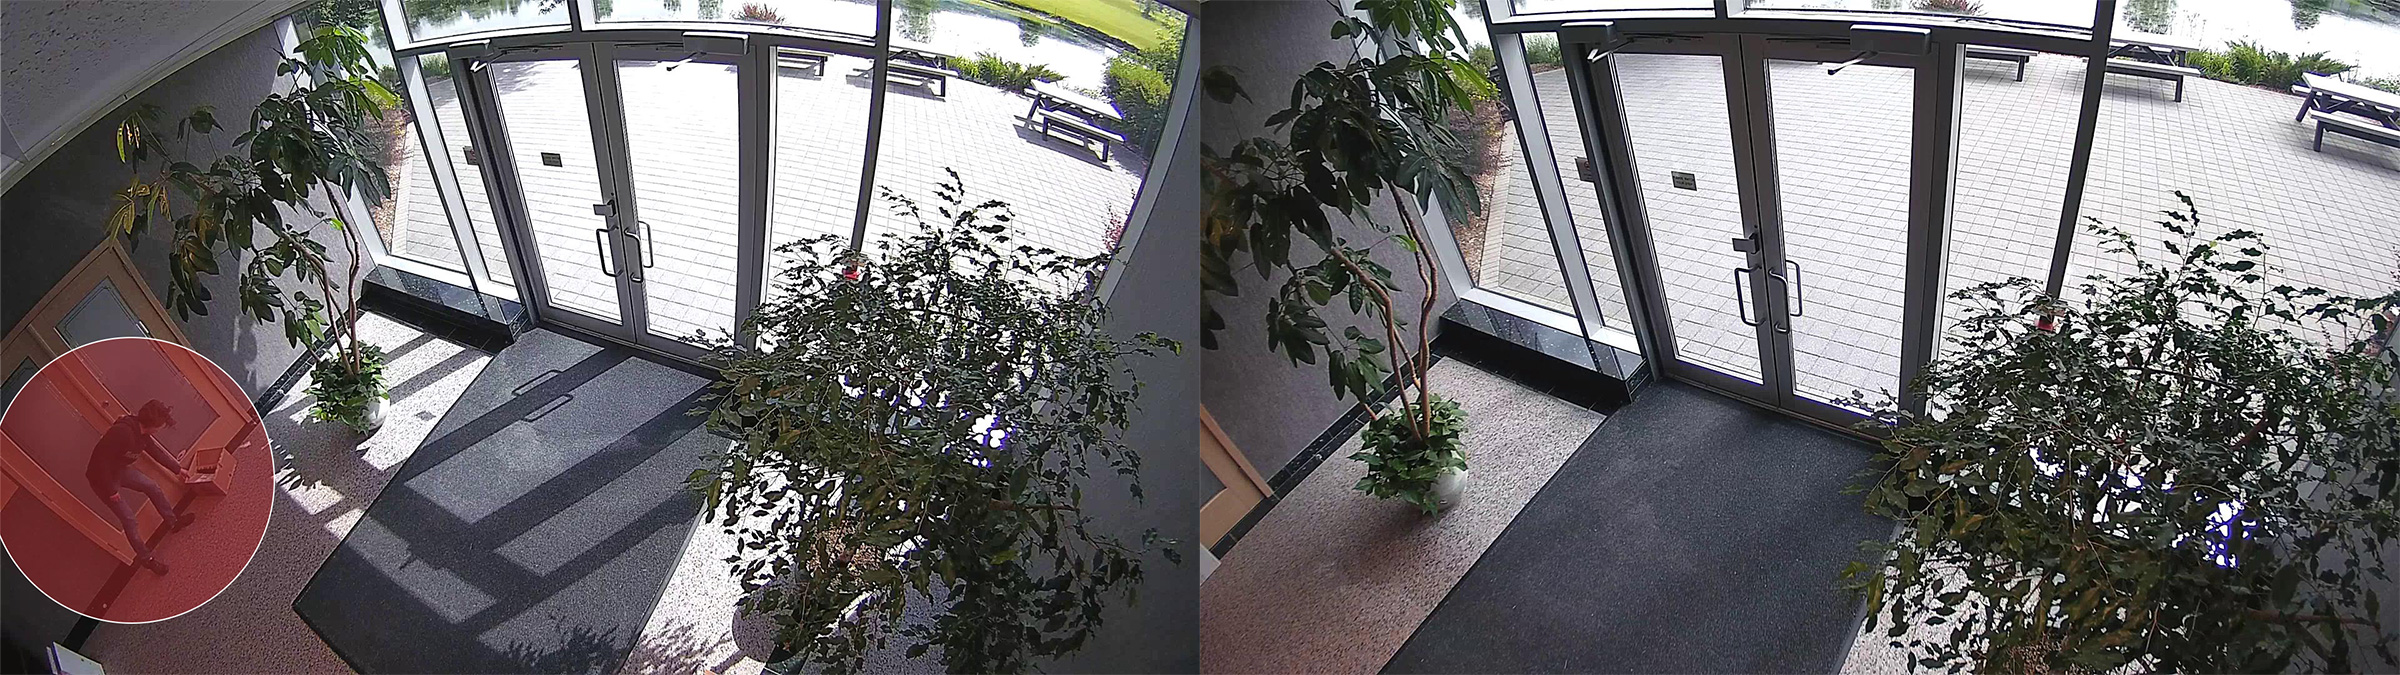 two surveillance images of a building lobby. One image is wider and captures more detail.